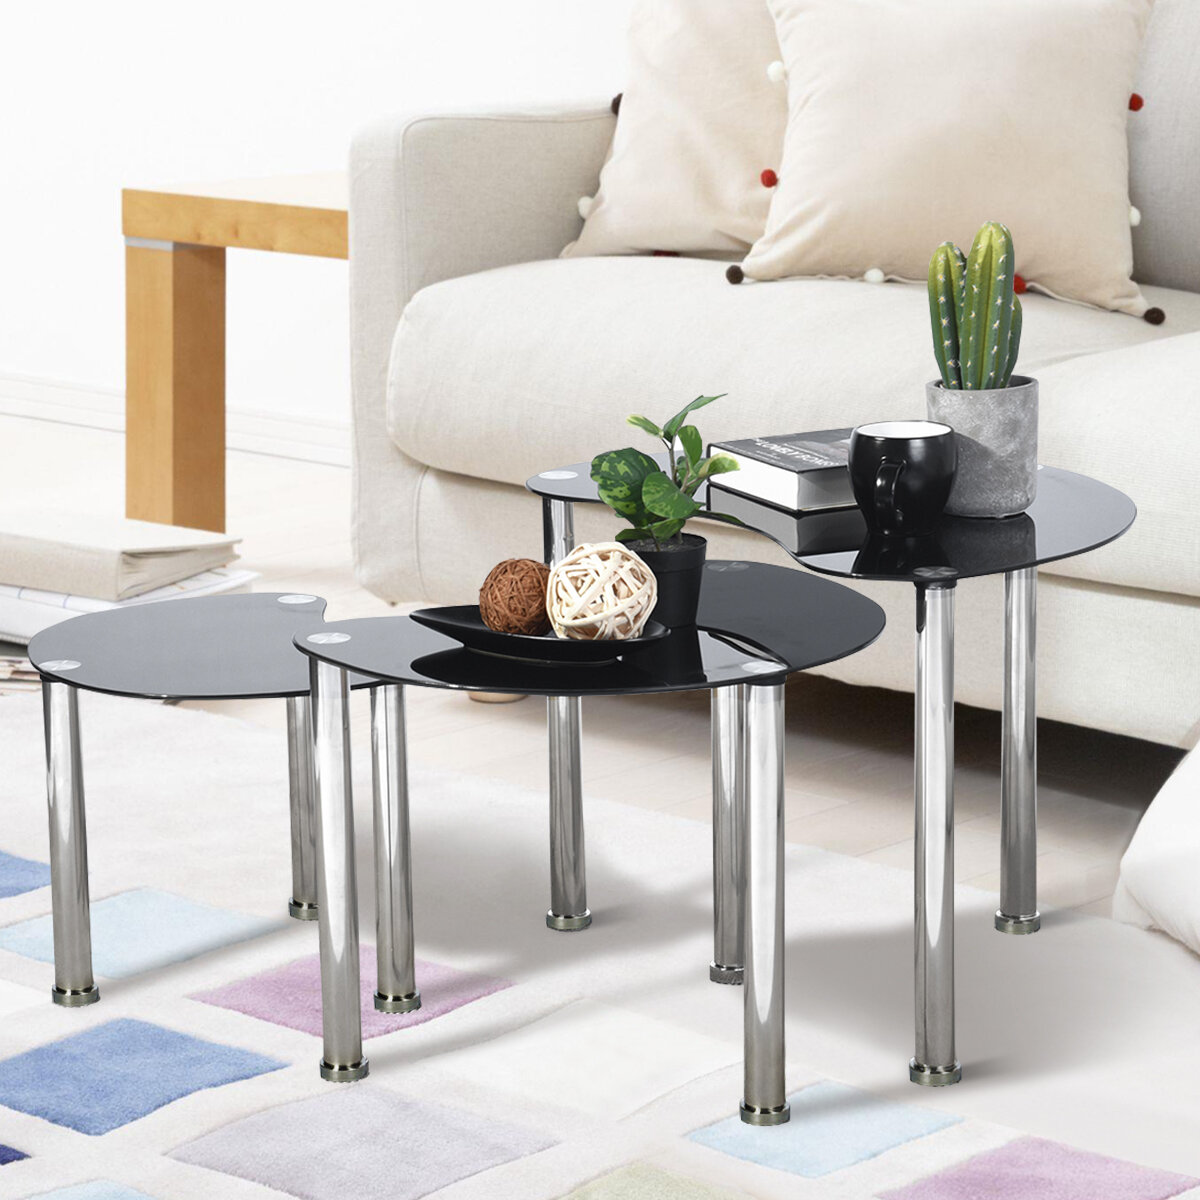 Orren Ellis Wyano 3 Legs 3 Bunching Tables Wayfair